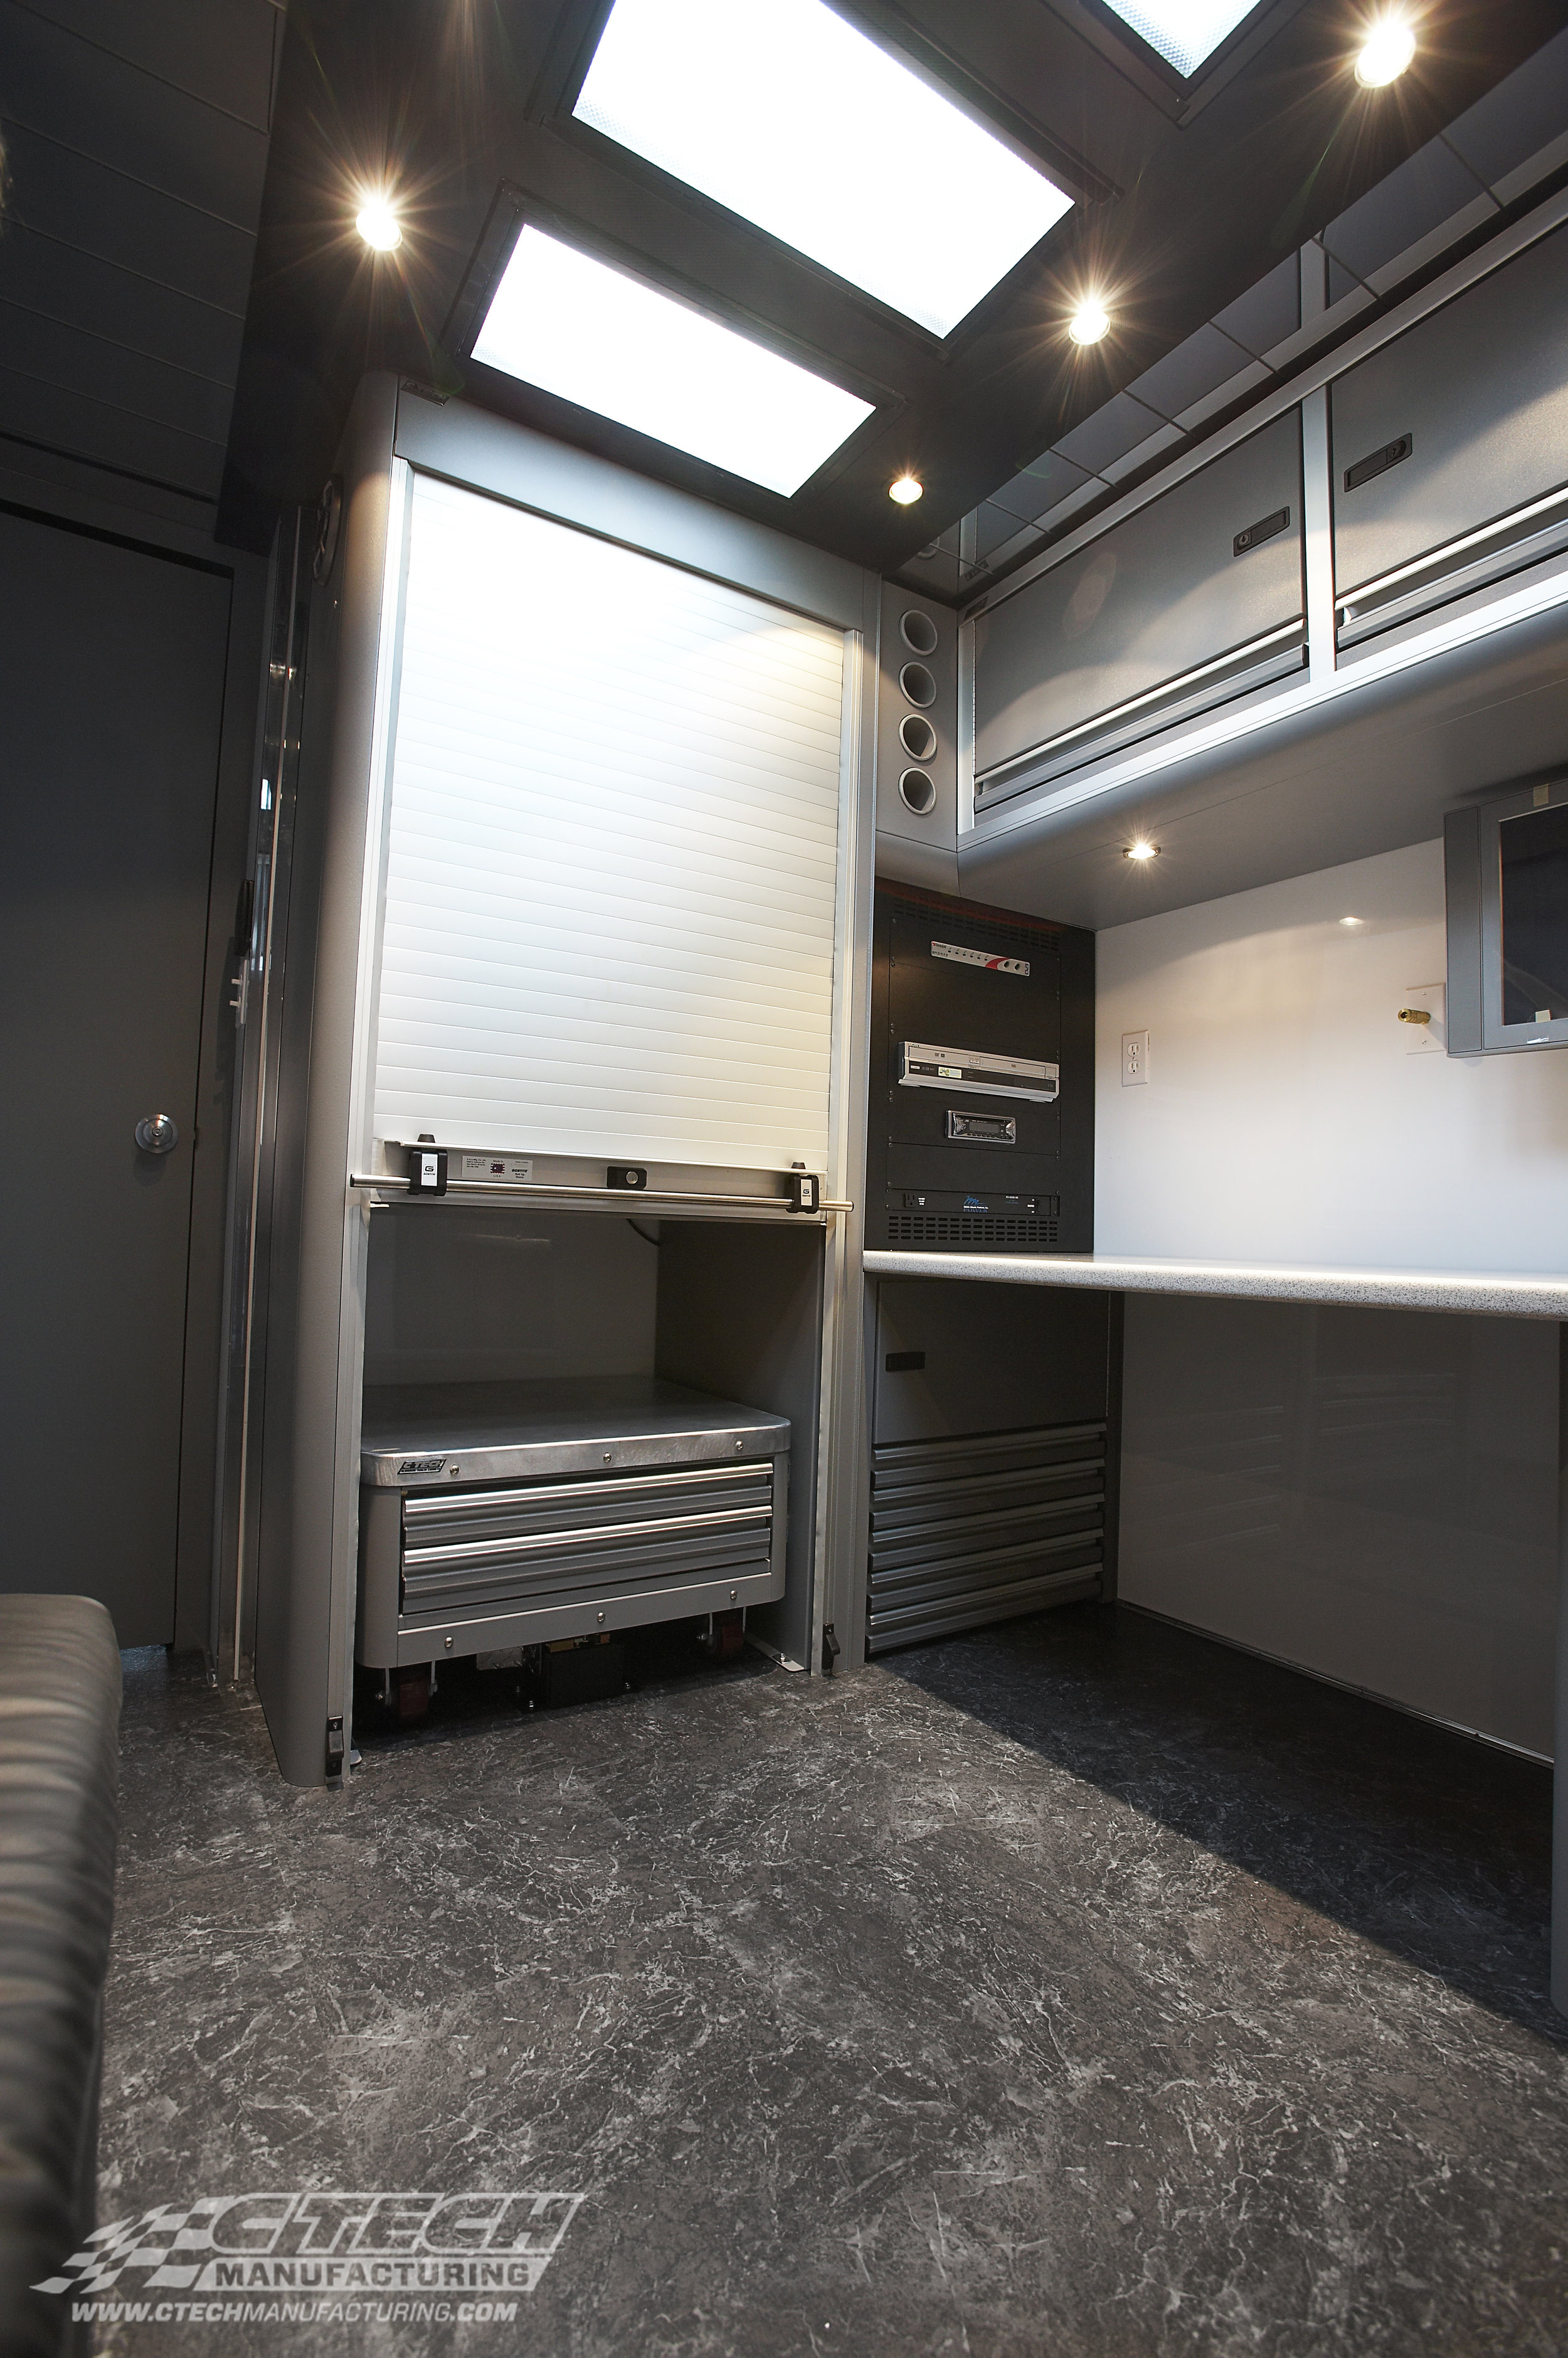 Small or large space, simple or intricate design, CTECH provides an exceptional product. Media and hospitality trailers have to do much more than store parts, so CTECH integrates power/media components, and dedicated spaces for all kinds of equipment into our storage spaces when needed.